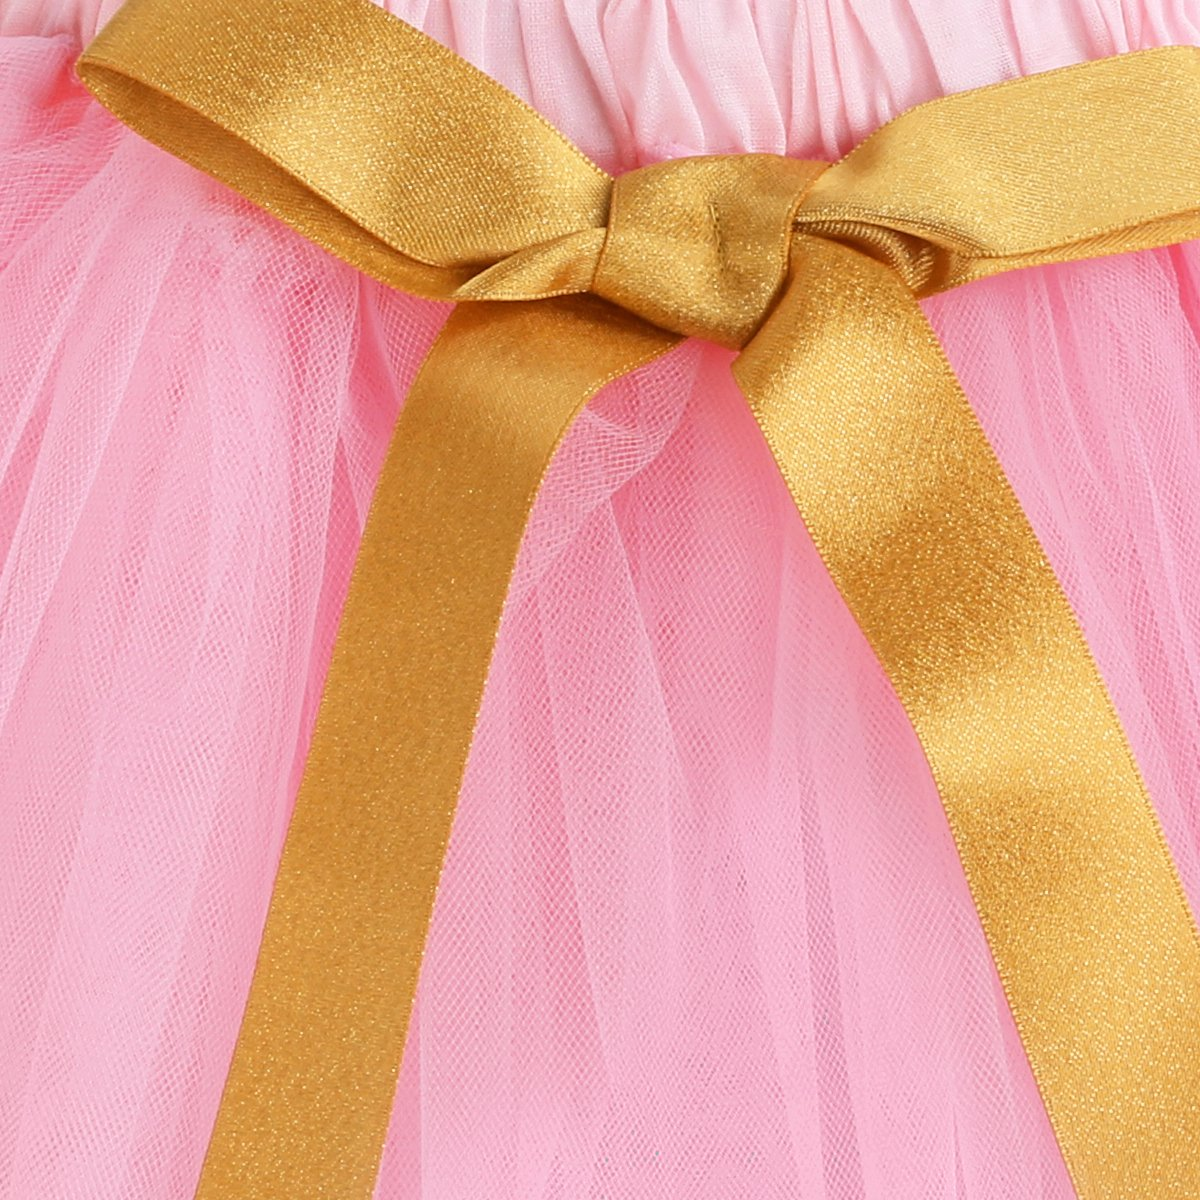 gold_color_bow_tie_in_front_of_the_skirt